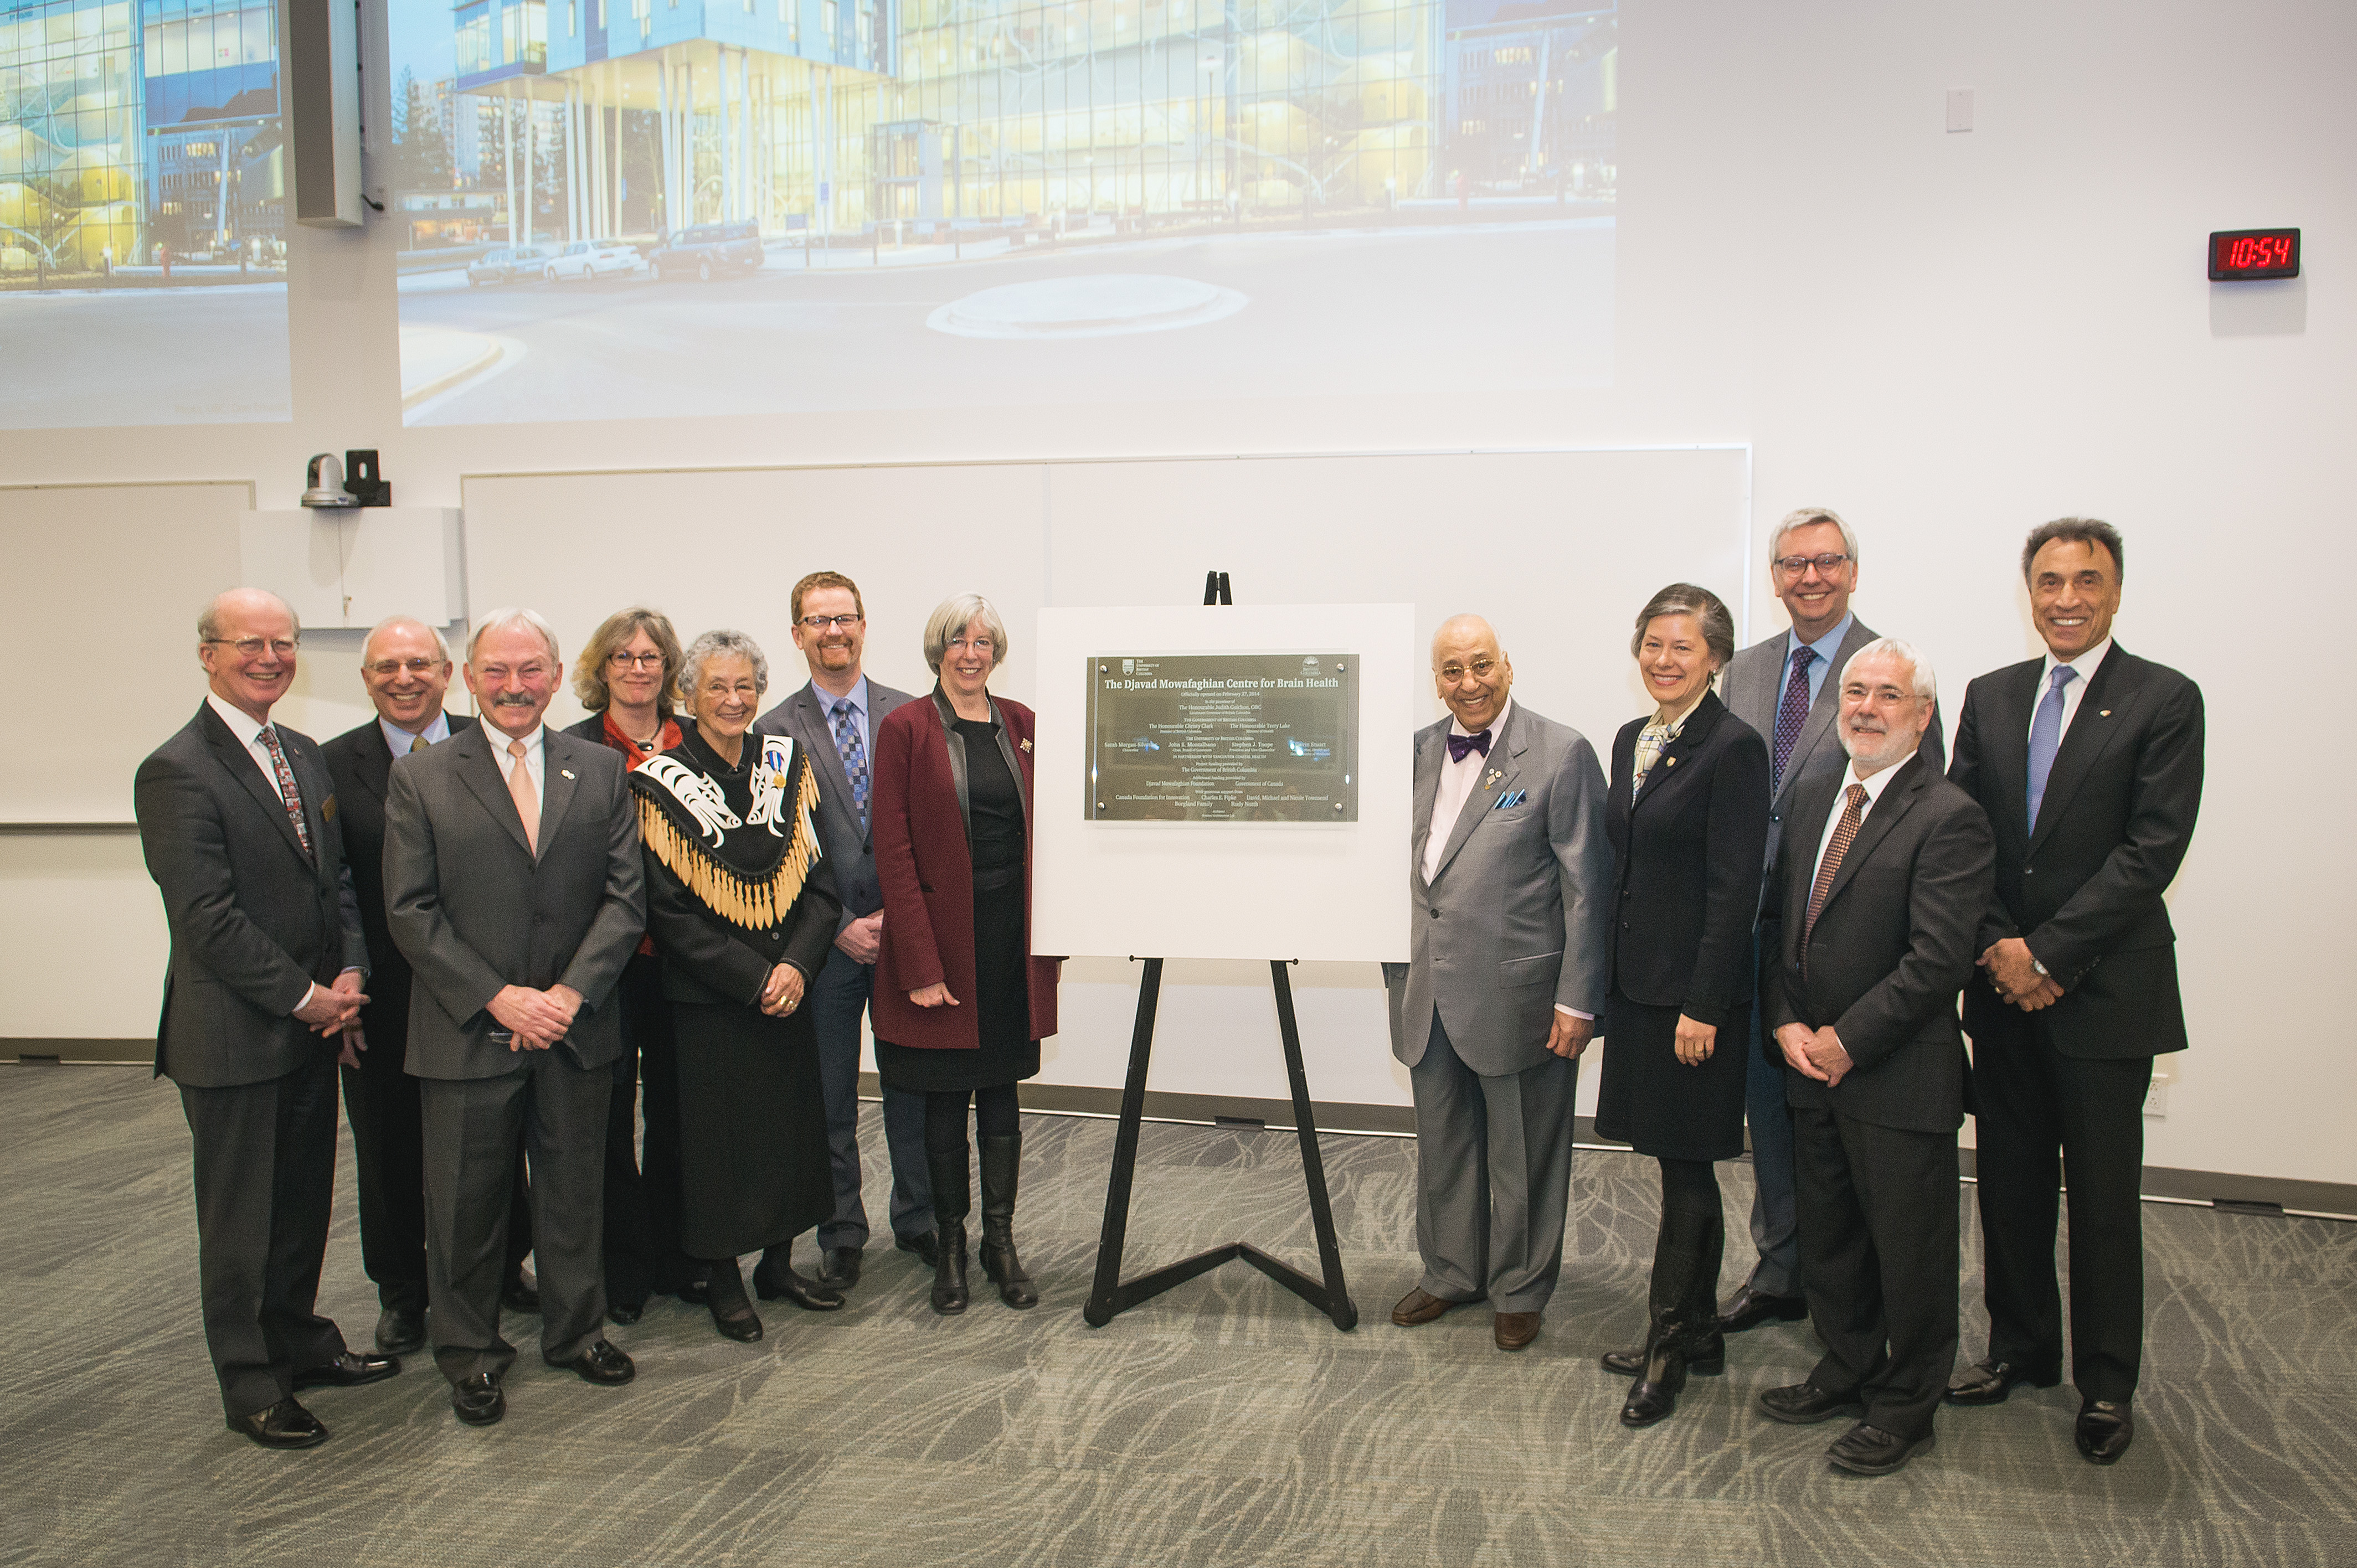 At the official opening of the Djavad Mowafaghian Centre for Brain Health. From left: Dr. Gavin Stuart, Dean and Vice Provost Health; Dr. David Ostrow, President and Chief Executive Officer, Vancouver Coastal Health; Max Cynader, director, Brain Research Centre and DMCBH; Marilyn Lenzen, MS patient; Mary Charles, Musqueam Elder; Terry Lake, B.C. Minister of Health; The Honourable Judith Guichon, Lieutenant Governor of B.C.; Djavad Mowafaghian; UBC Chancellor Sarah Morgan-Silvester; UBC President Stephen Toope; Robert Davidson, Vice-President of Programs and Planning at the Canada Foundation for Innovation; Hamid Eshghi, President of the Djavad Mowafaghian Foundation. Photo: Martin Dee